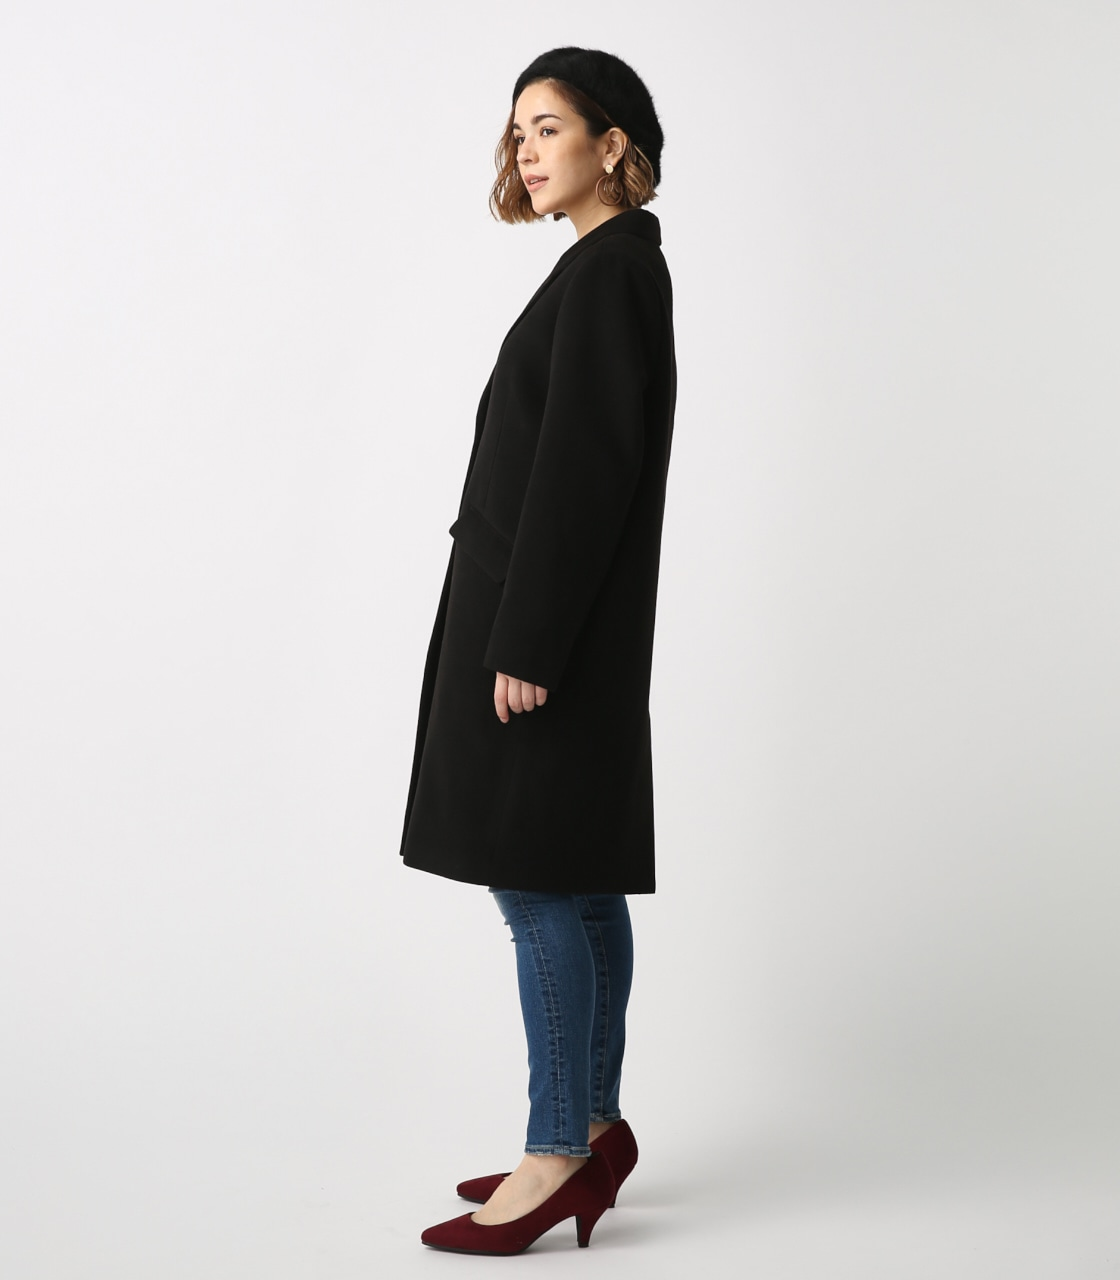 【AZUL BY MOUSSY】スタンダードチェスターコート 詳細画像 BLK 6